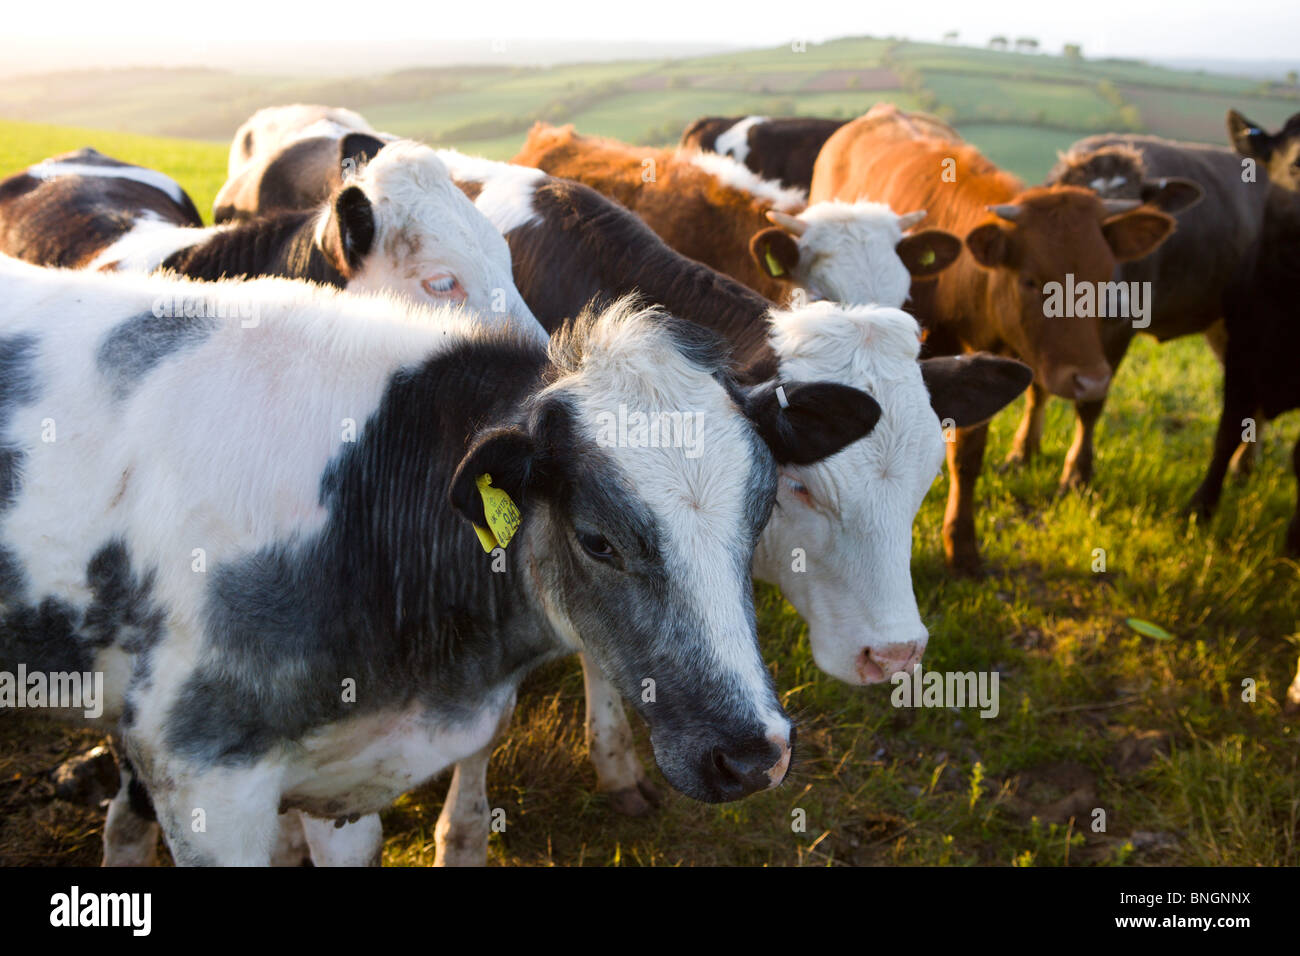 Curious Bullocks crowd together in a farmers field, Devon, England. Spring (May) 2009 - Stock Image